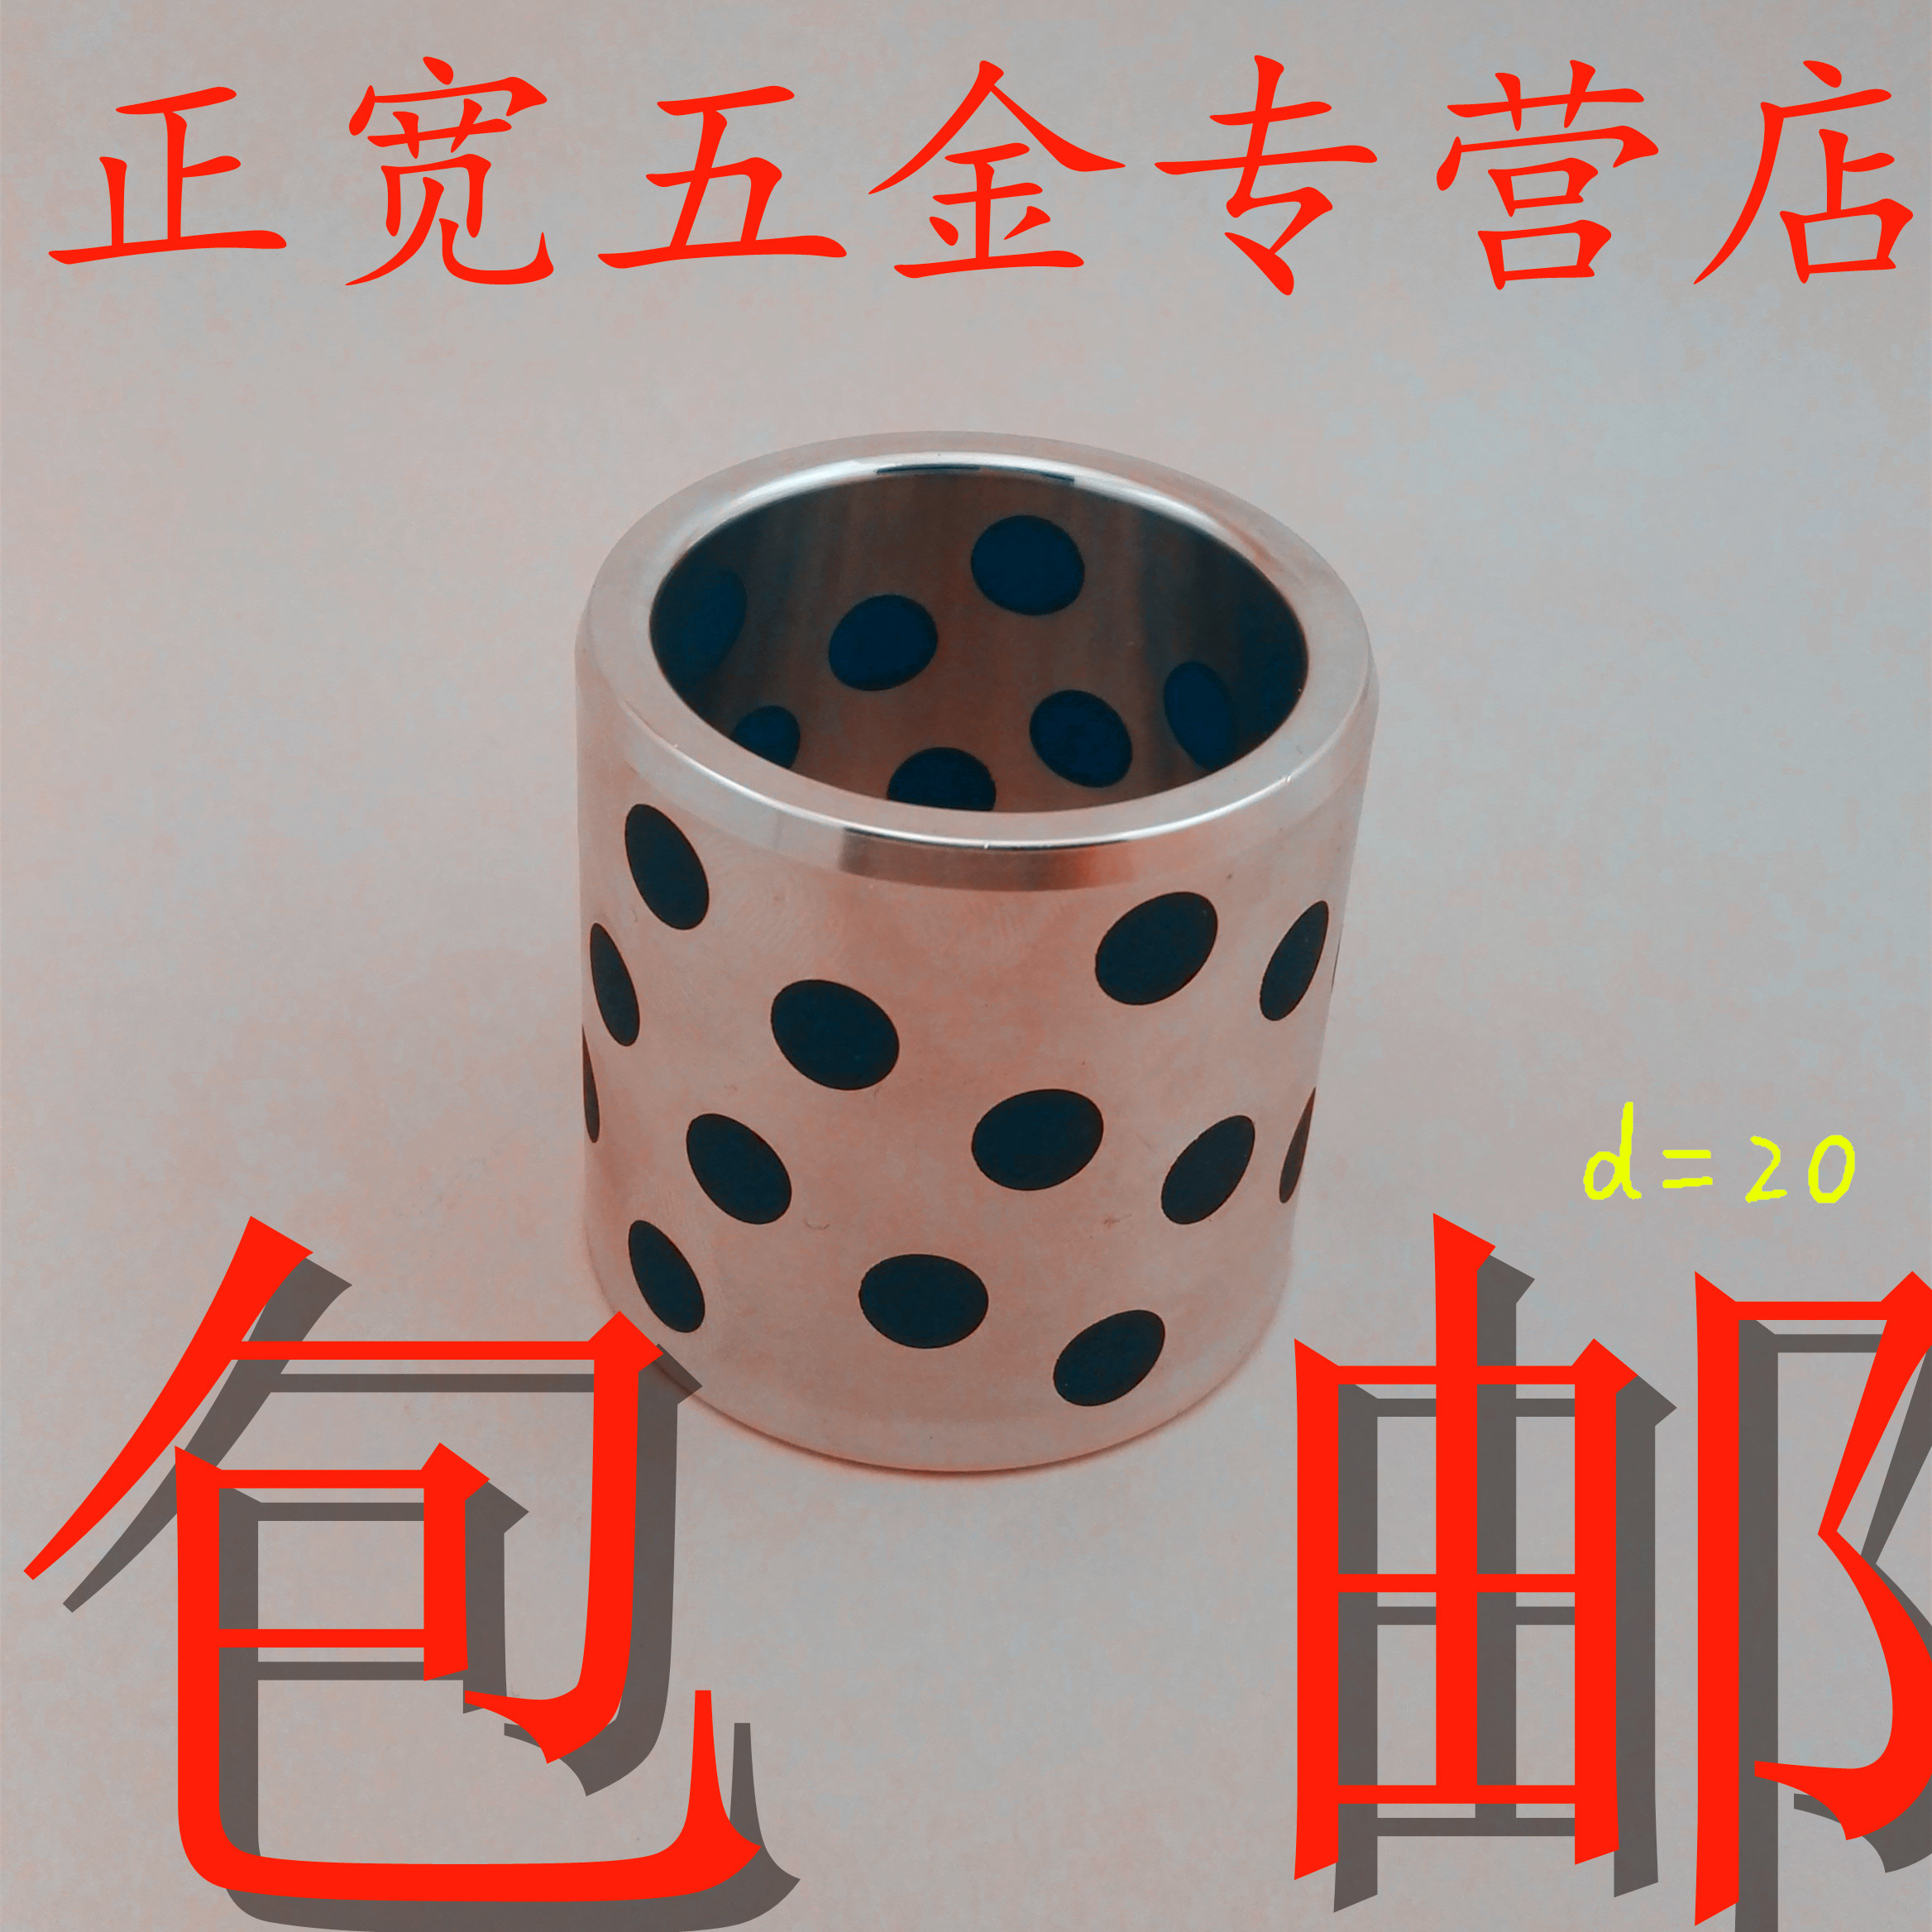 Jdb inlaid solid self lubricating graphite oil bearing/bushing without oil/graphite copper sleeve inside diameter of 20 outer diameter 30